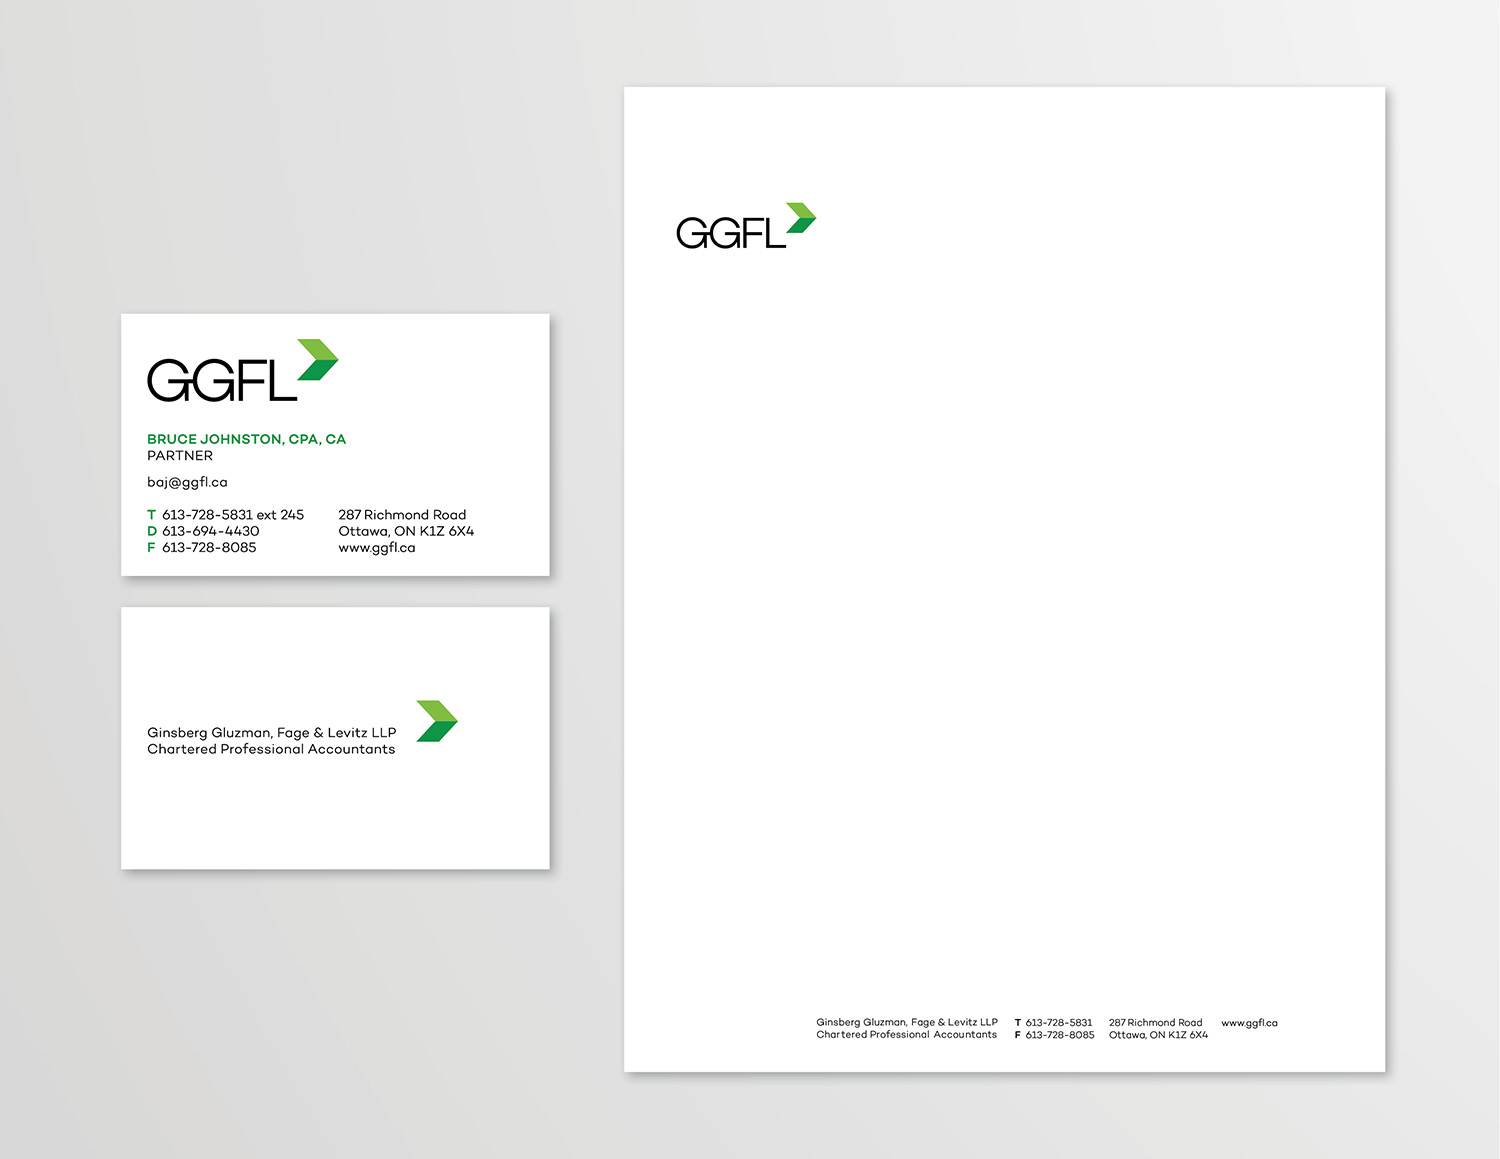 ggfl-logo-collateral2